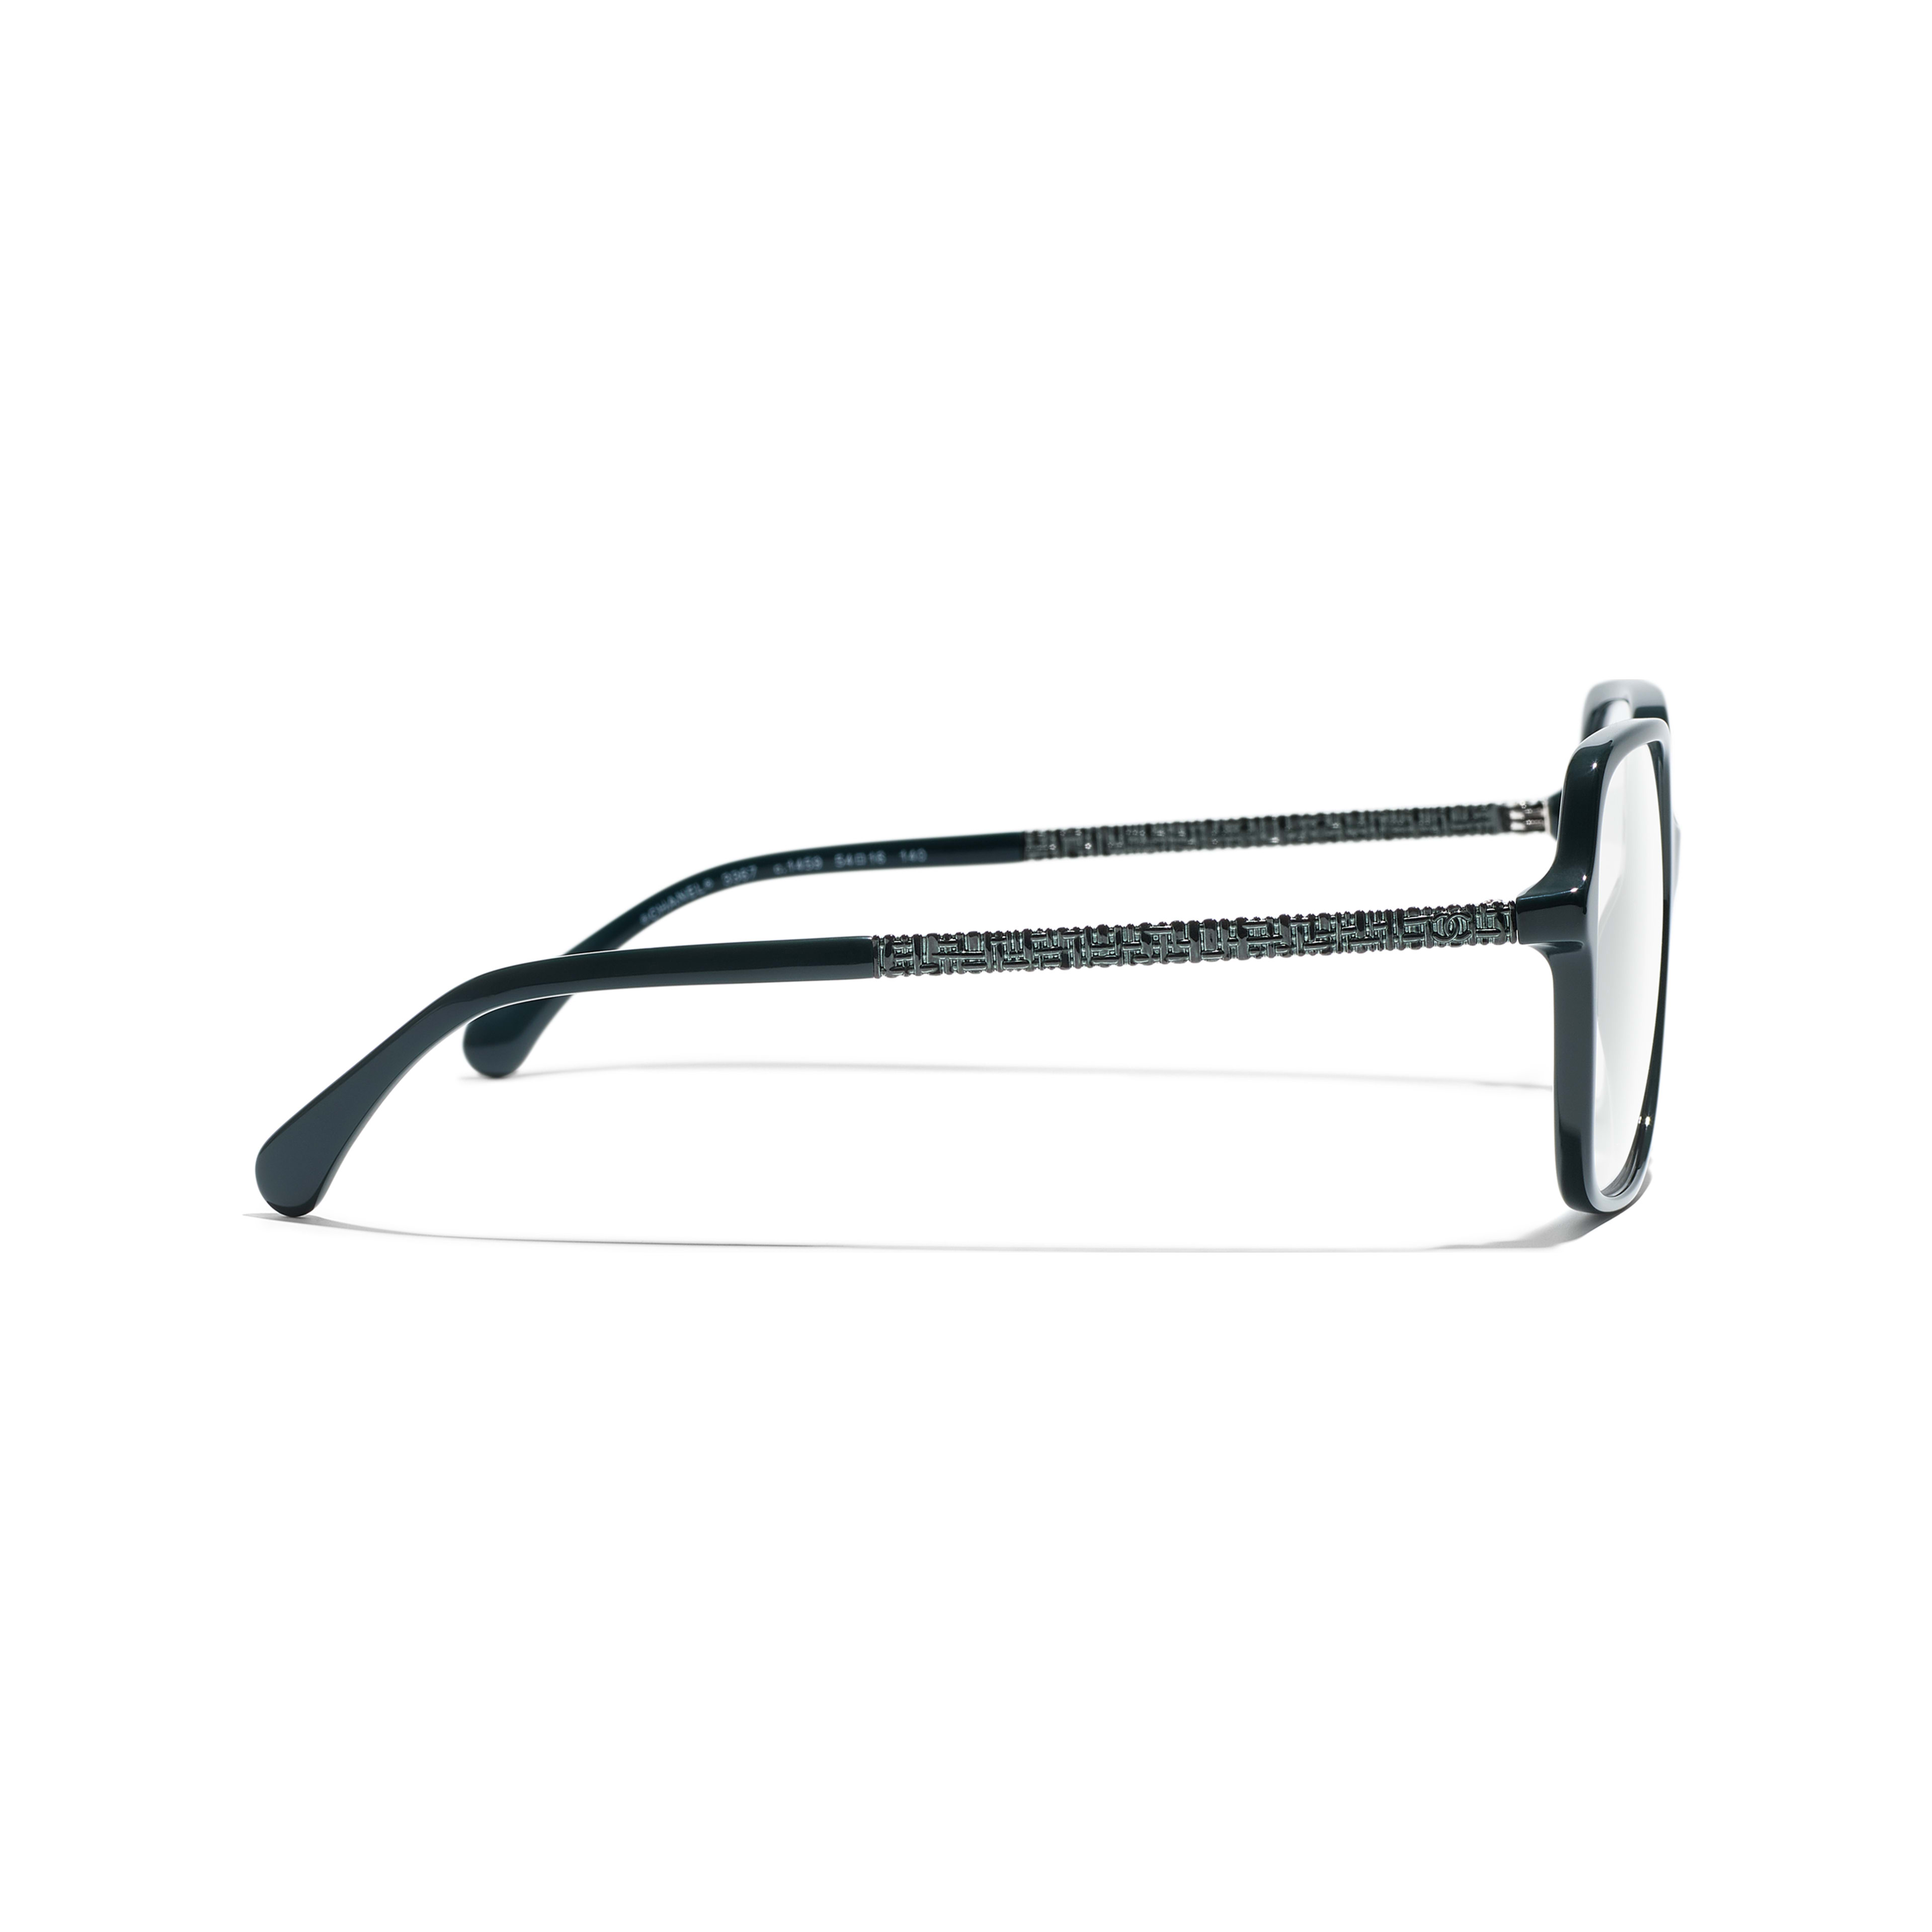 Square Eyeglasses - Dark Green - Acetate - Other view - see full sized version